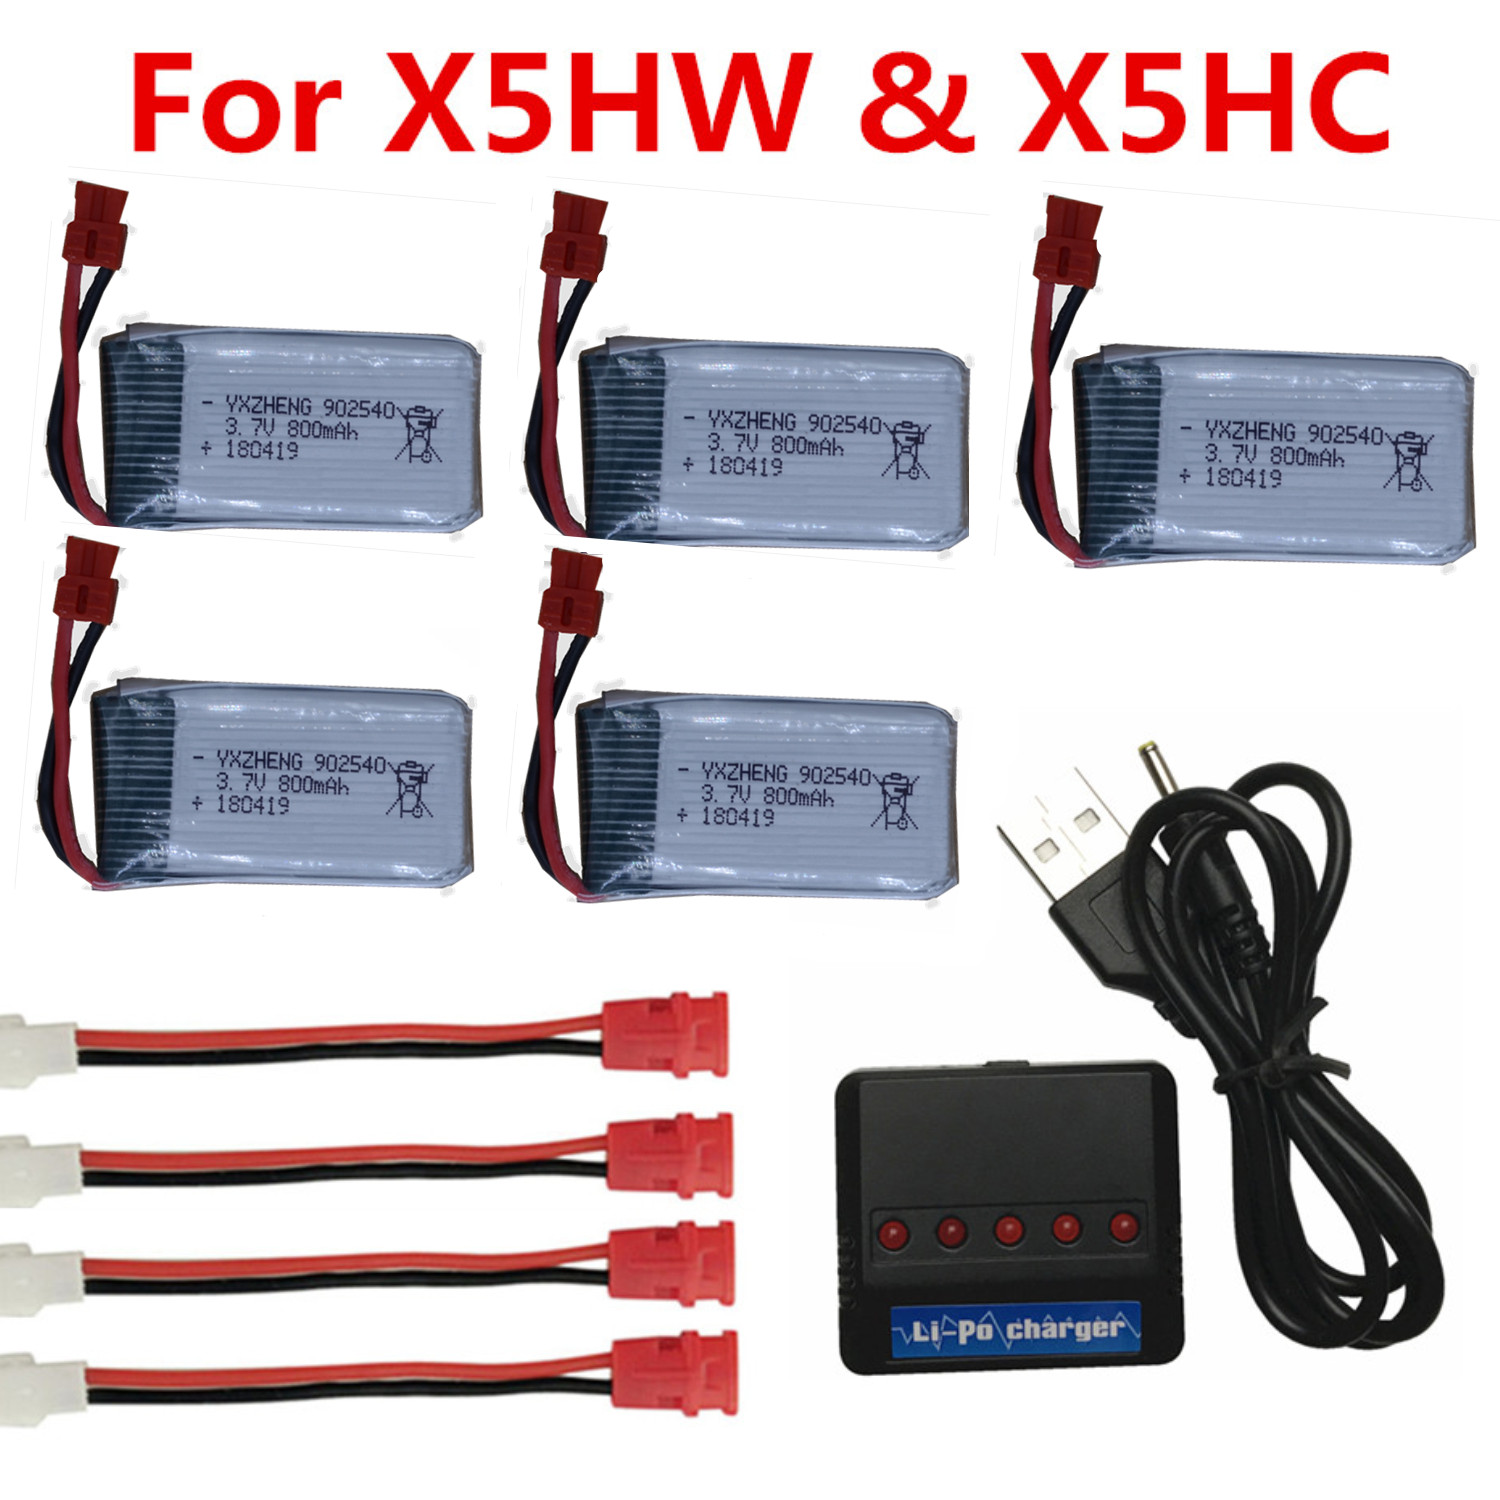 5pcs 902540 800mAh 3.7V 25c LIPO Battery with USB Charger sets for SYMA X5C X5 X5HW X5HC RC Drone Qaudcopter battery